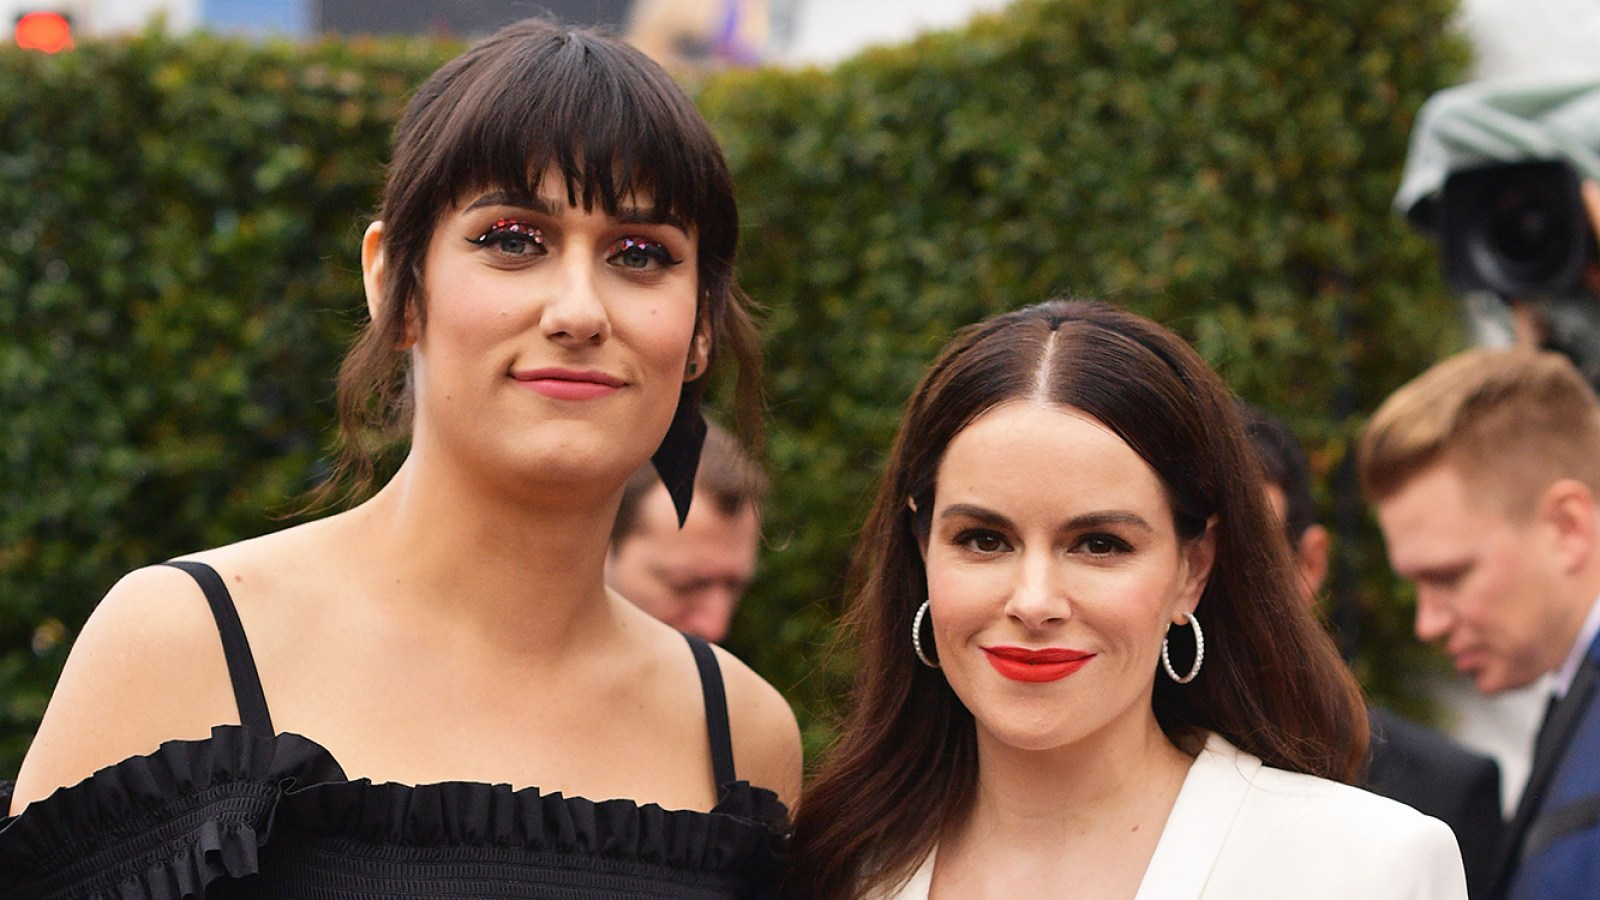 Grammys 2019: Teddy Geiger Attends With Fiancee Emily Hampshire